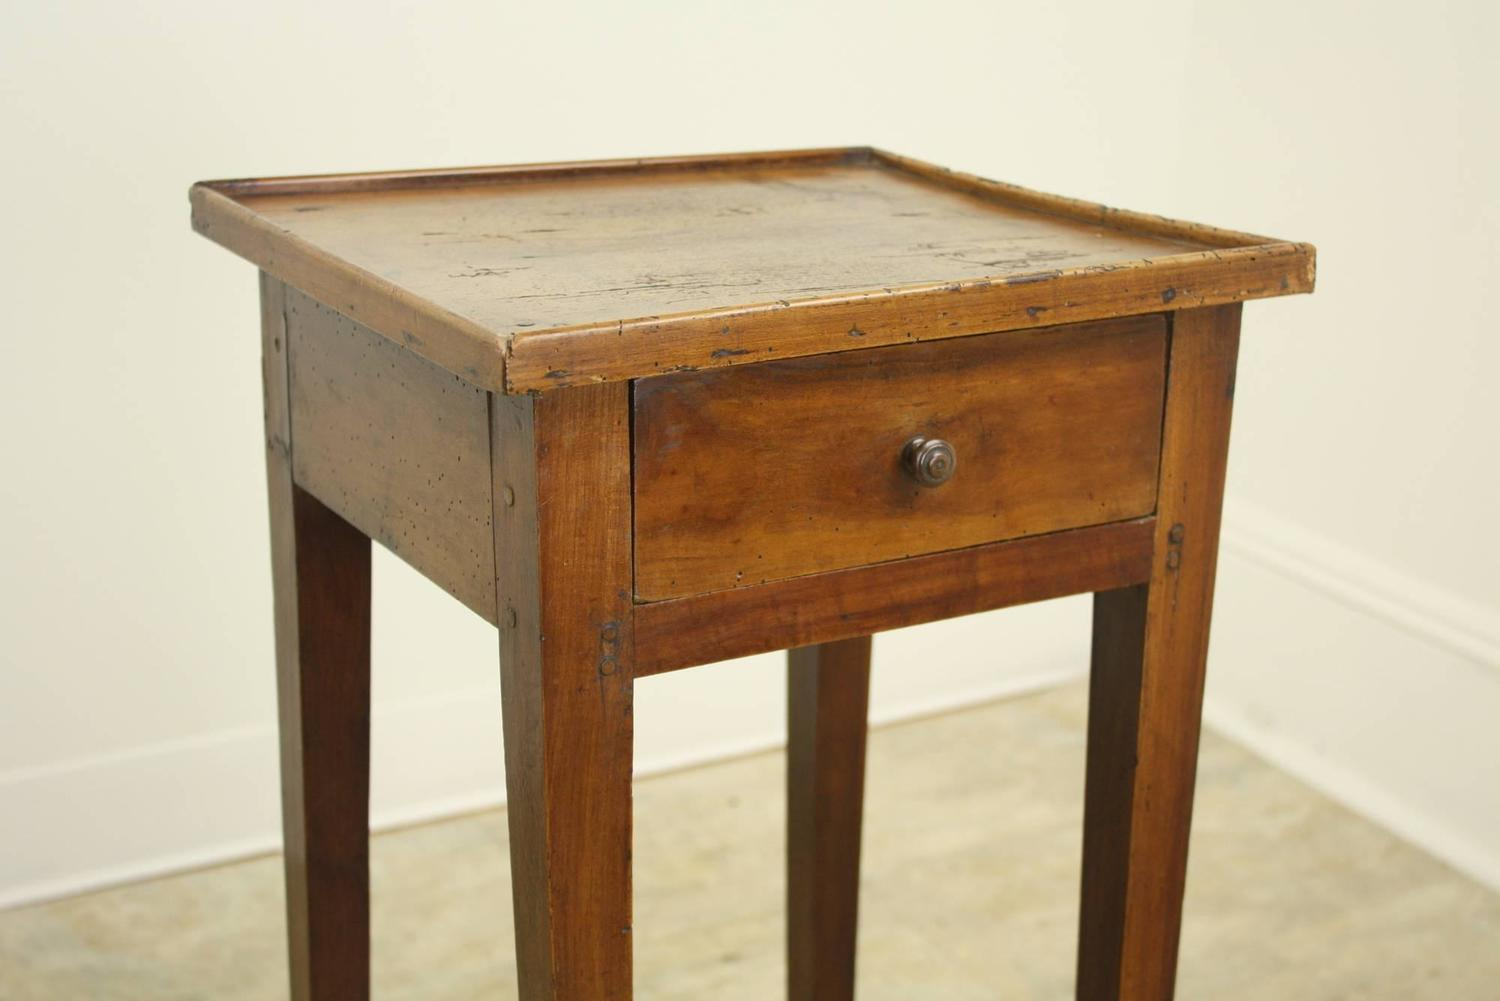 antique french cherry side table charming small gallery img end tables kmart porch chairs outdoor fire pit brown sofa black furniture spray paint for kids diy metal legs porcelain